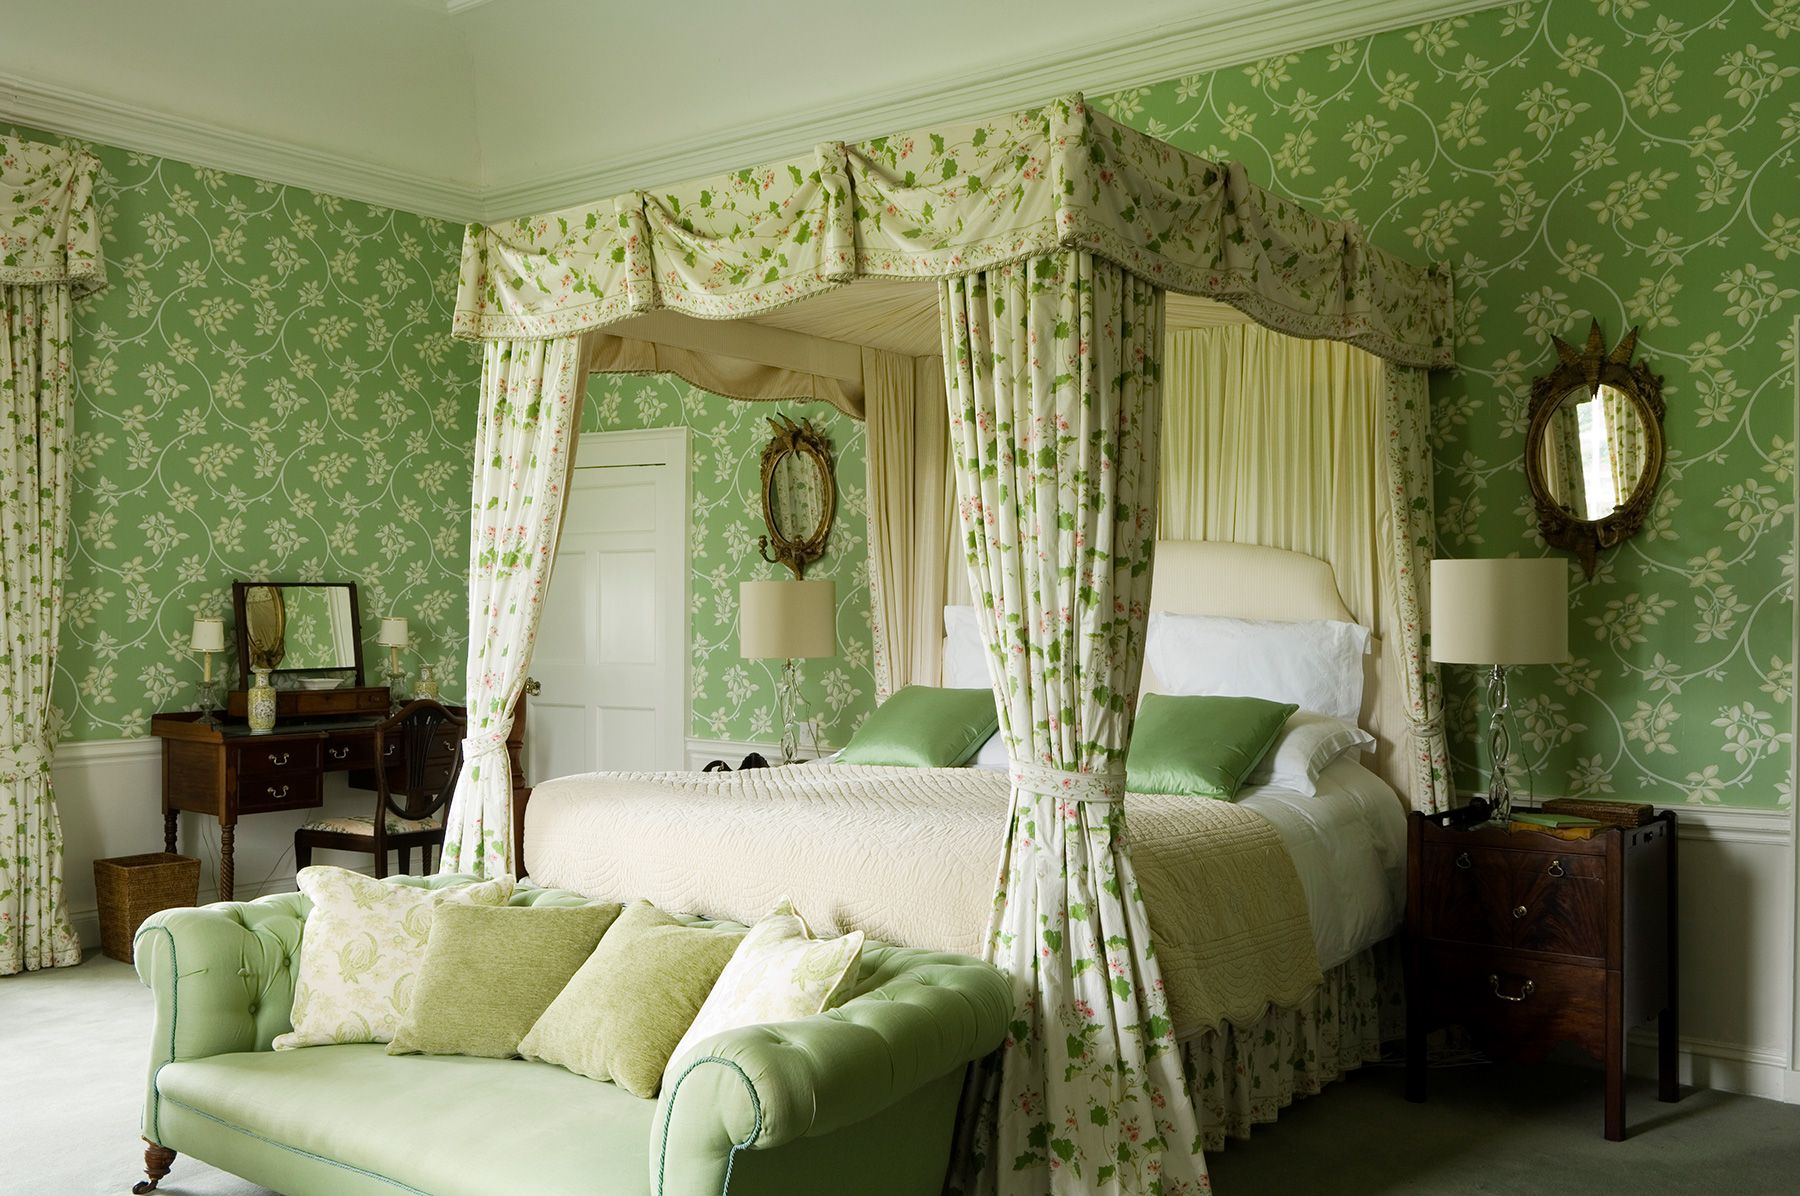 Irish Country Green Bedroom Bedroom Green Traditional Bedroom - Green Designer Bedroom